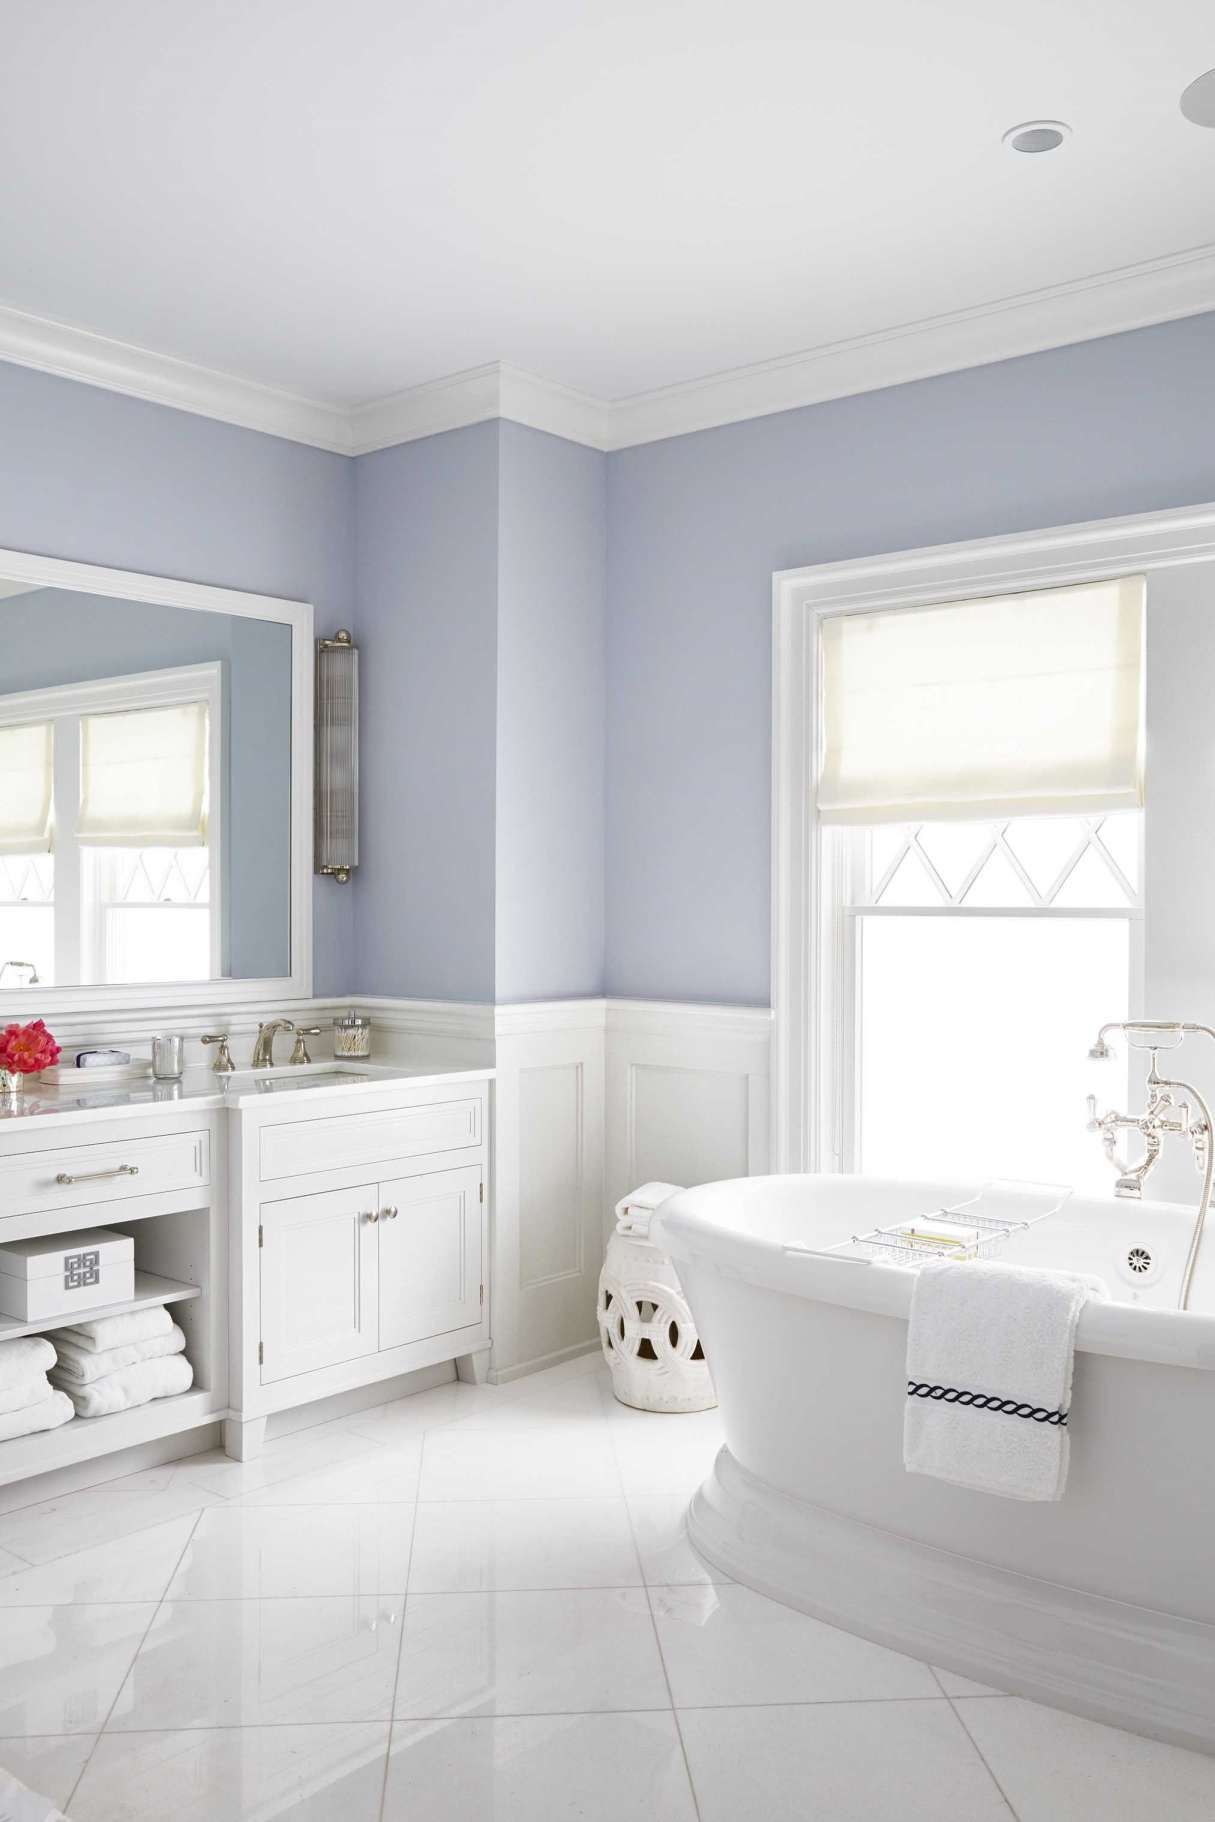 8 top bathroom wall color ideas collection on wall color ideas id=35186